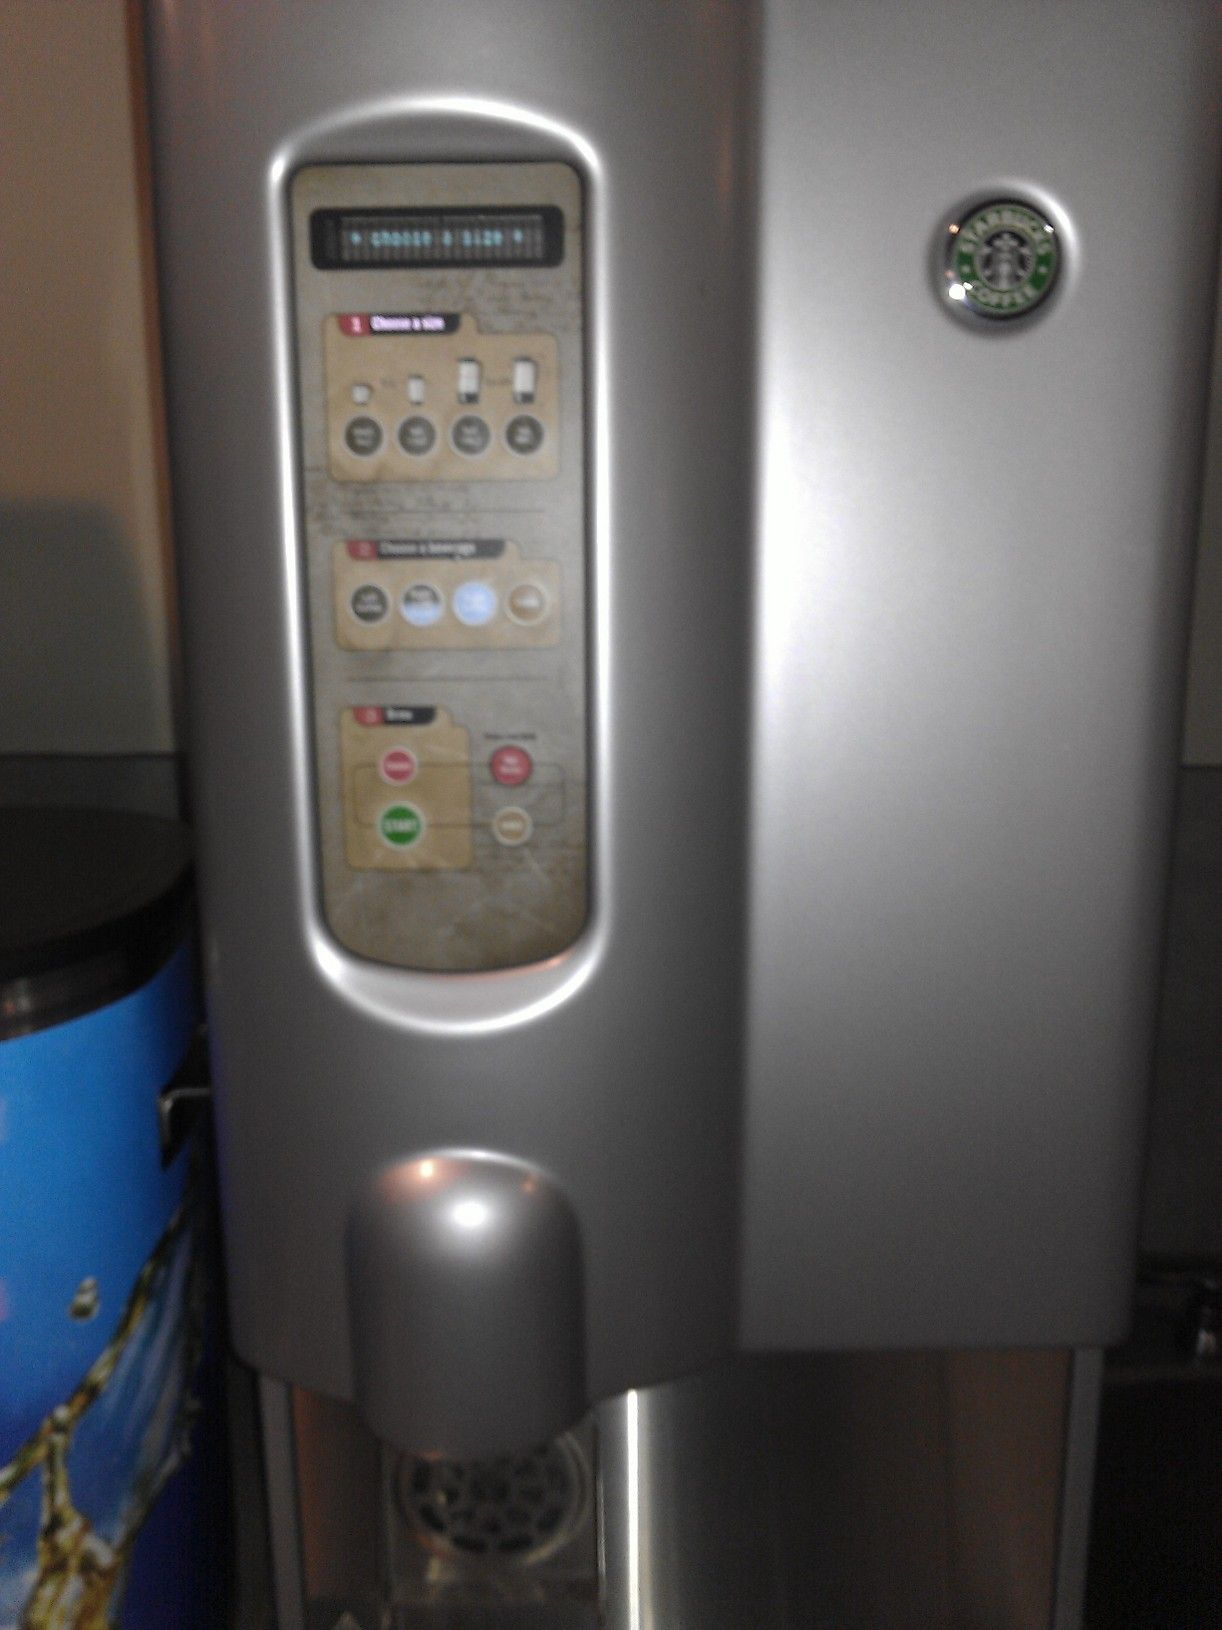 Yes, that is a super fancy soda dispenser with countless options.